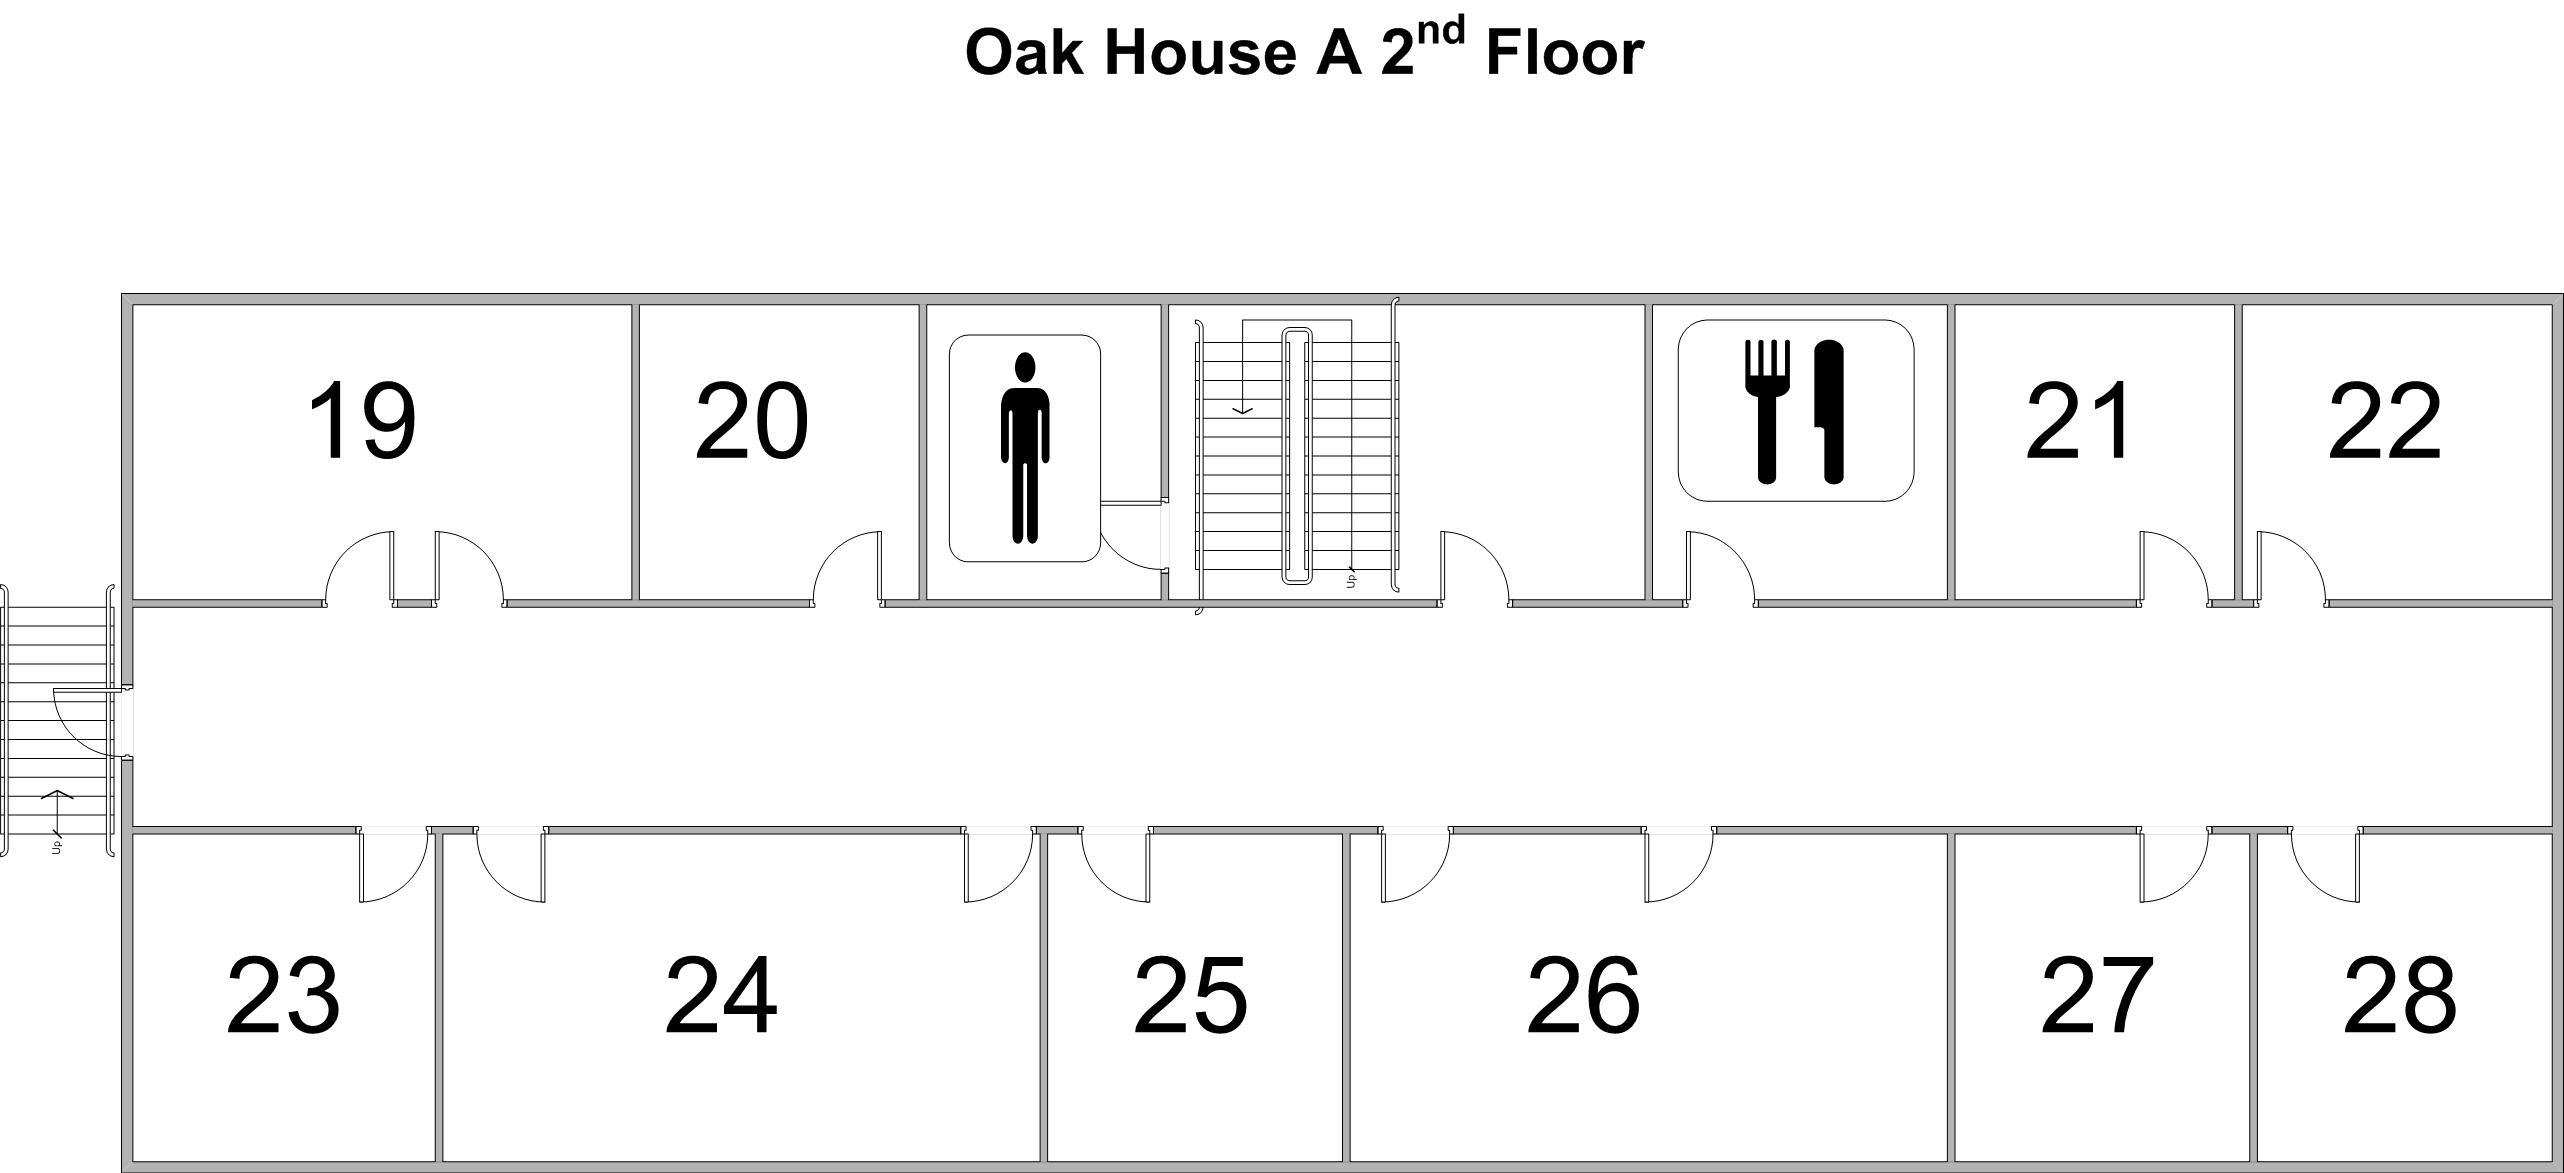 Oak House A22, Ransom Wood Business Park, Mansfield NG21